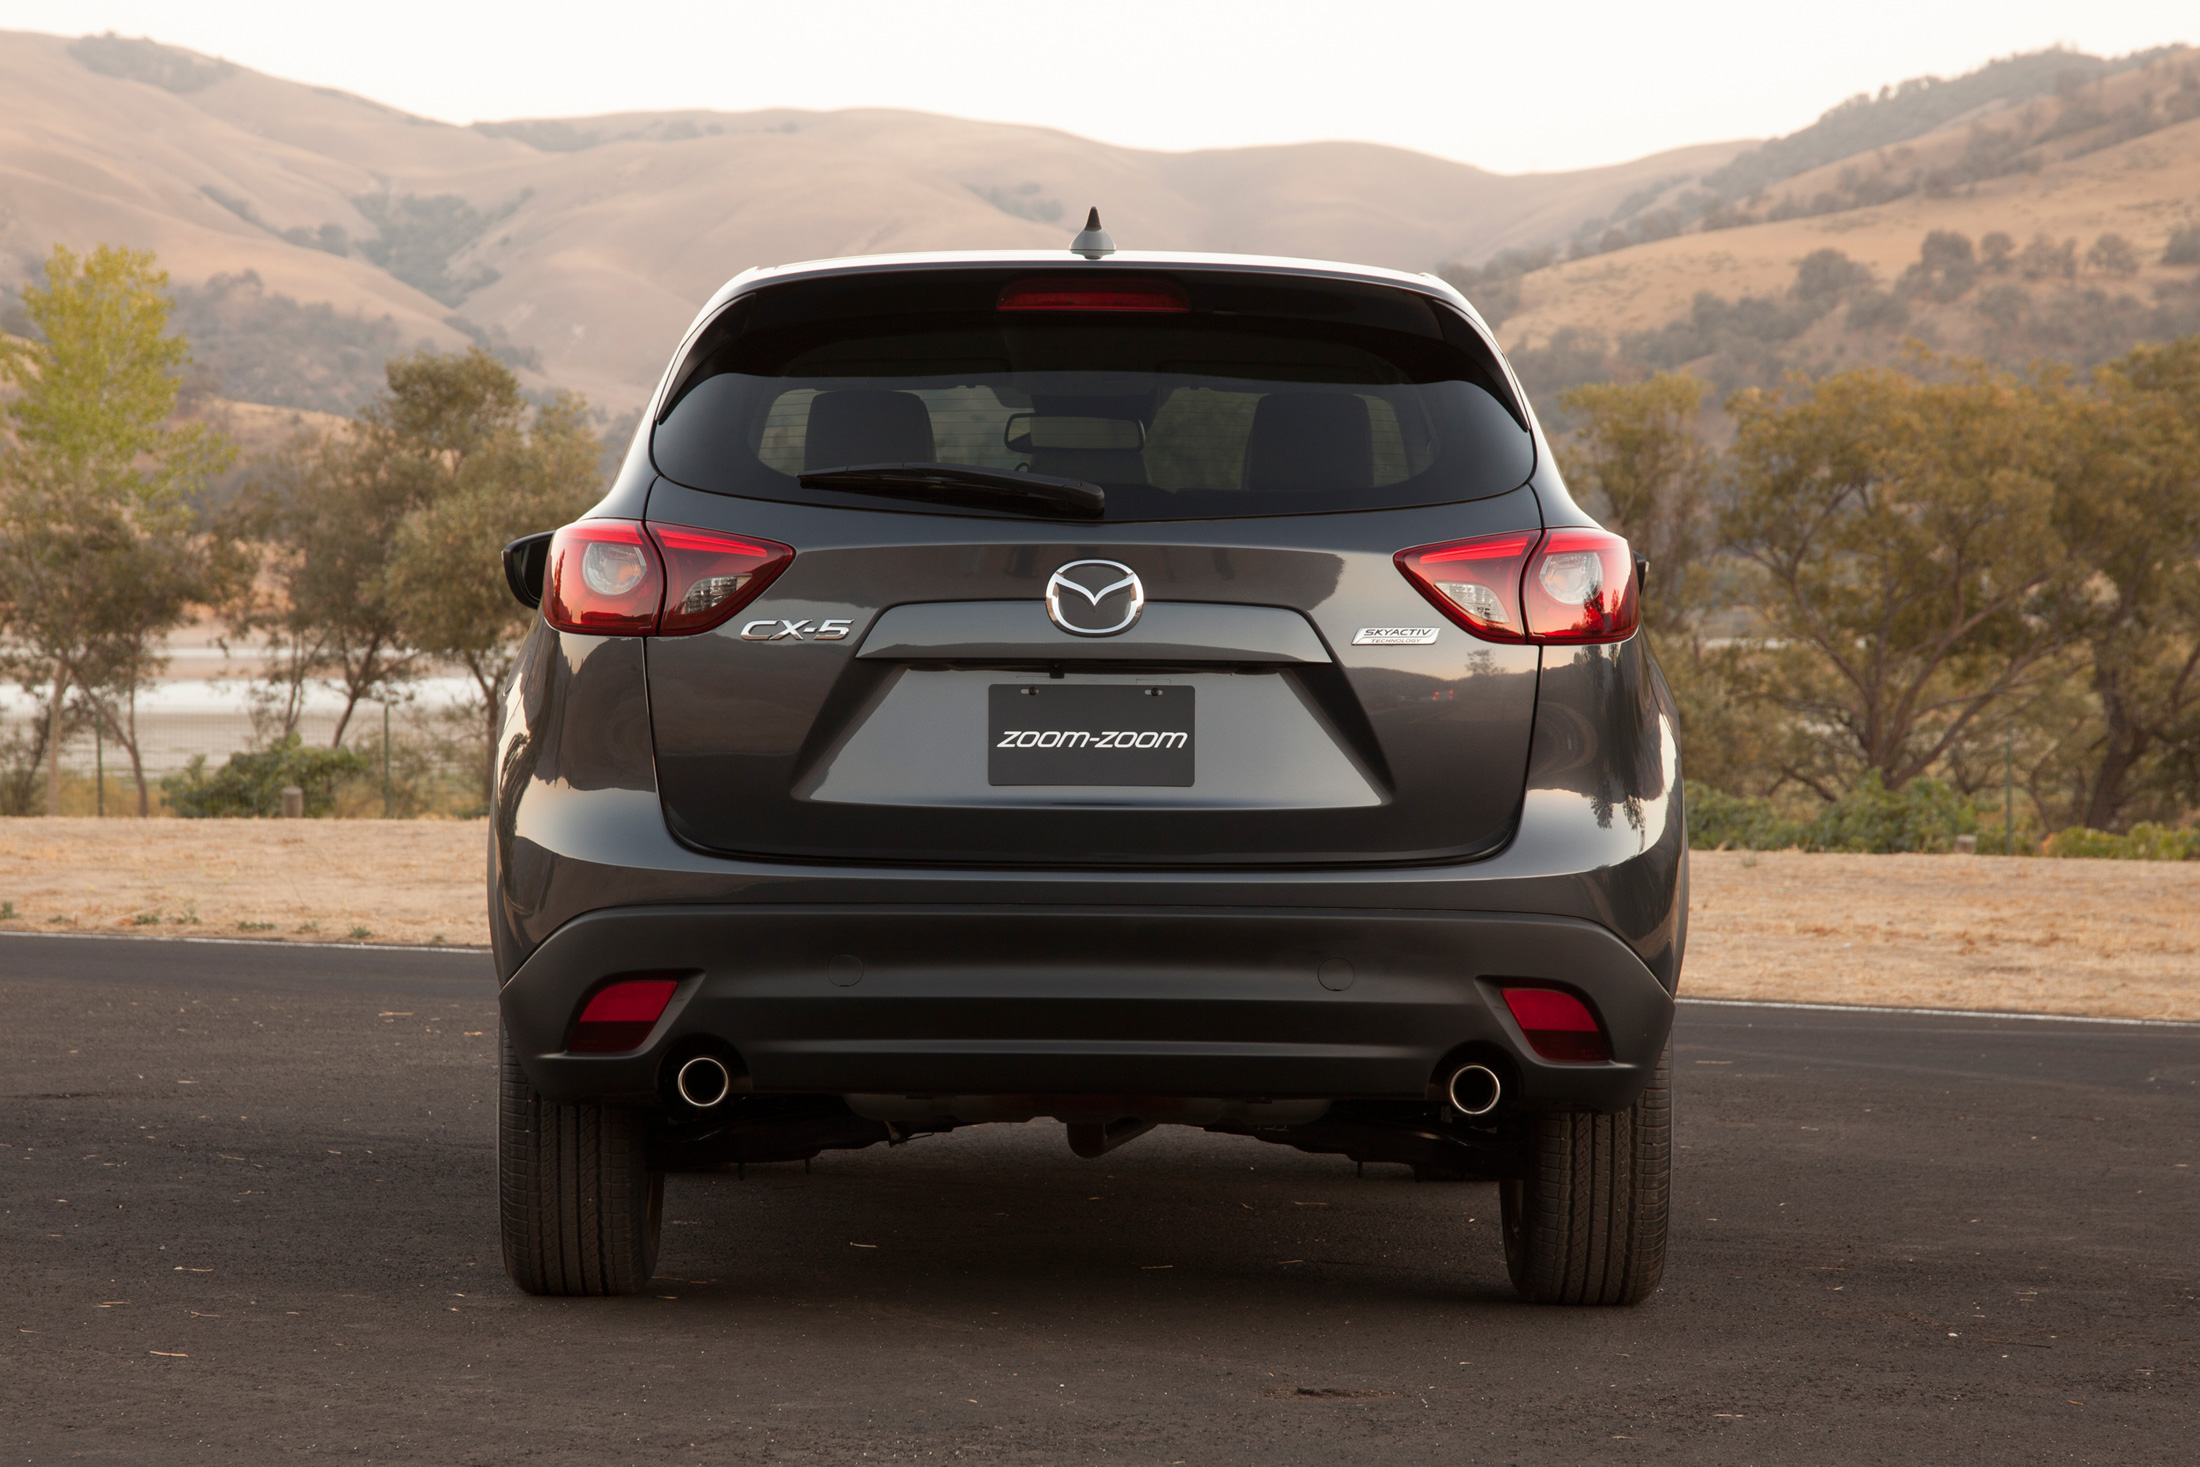 2016.5 mazda cx-5 gets new standard features, $22,695 starting price